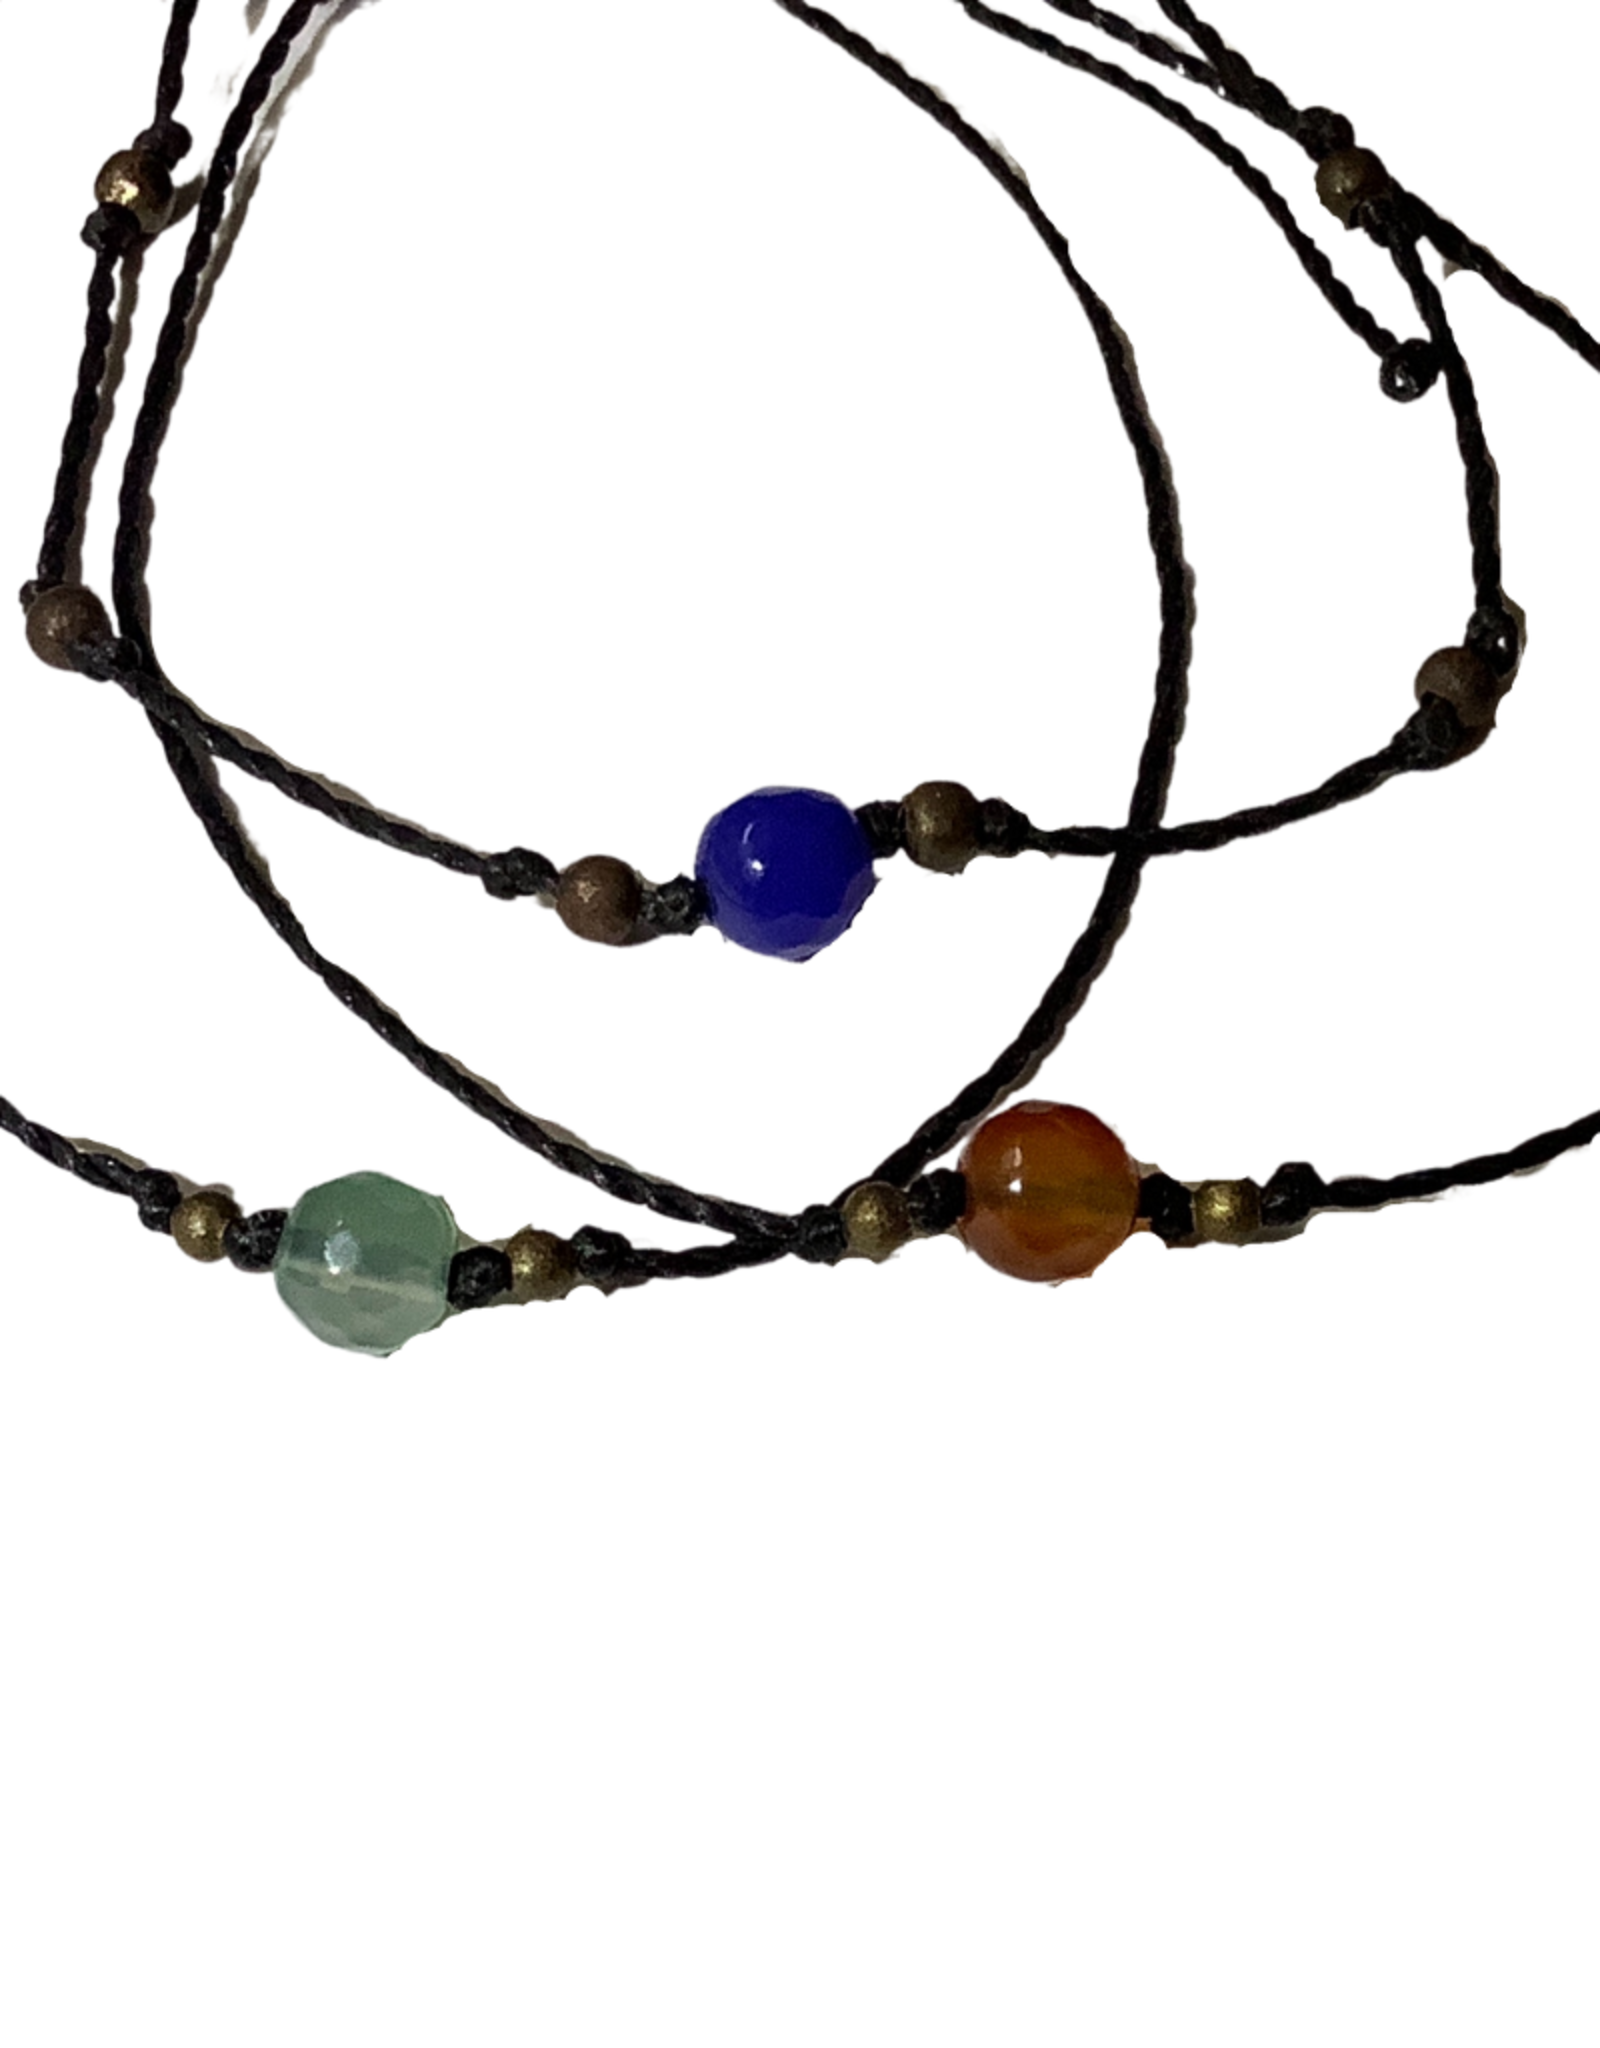 Bracelet, Linen cord with stone, assorted